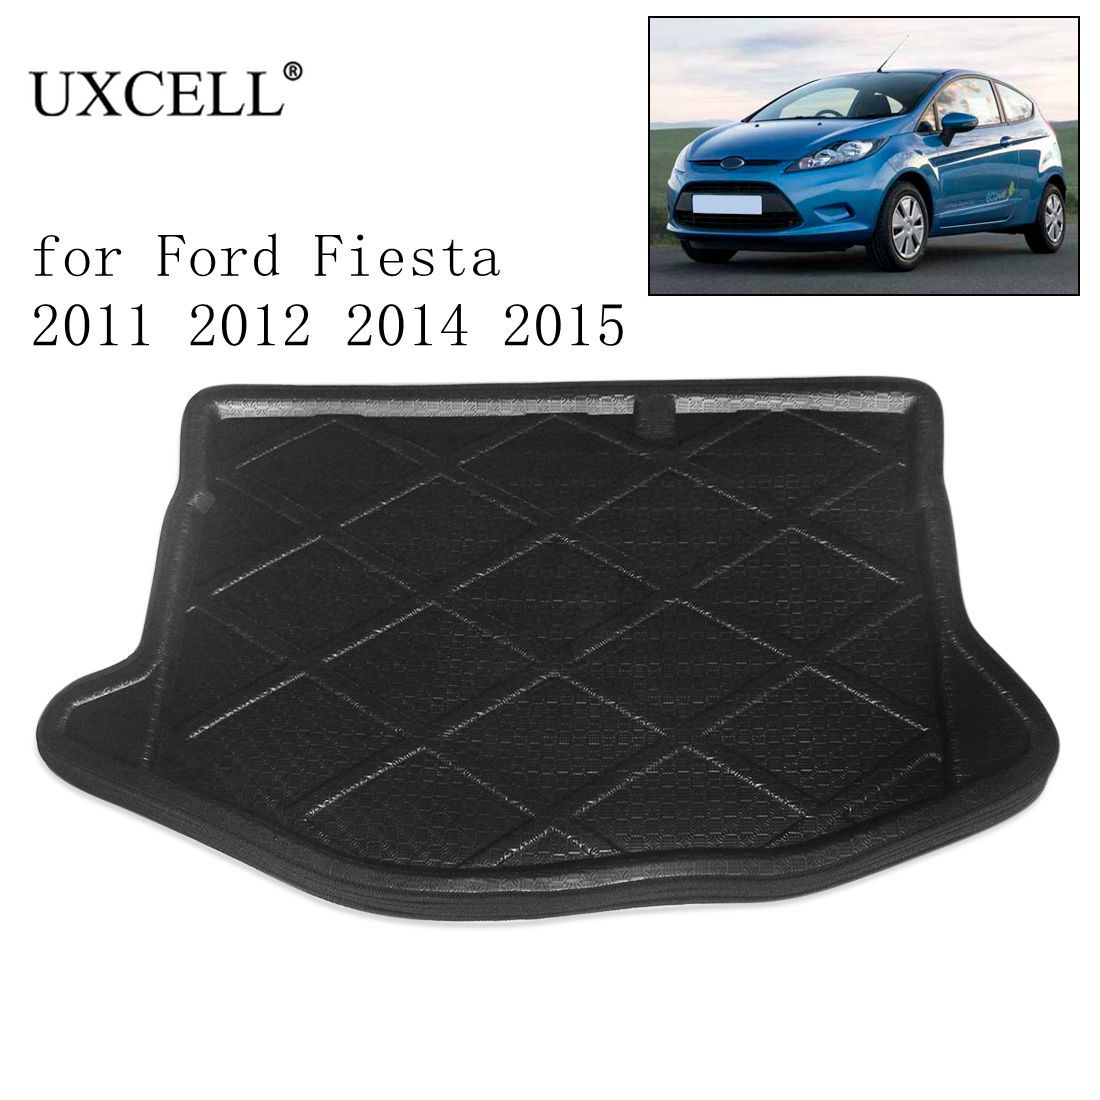 UXCELL Rear Car Trunk Tray Boot Liner Cargo Floor Mat Cover For Ford Fiesta Focus Hatchback 2005-2018 For Ford Focus Sedan 12-17